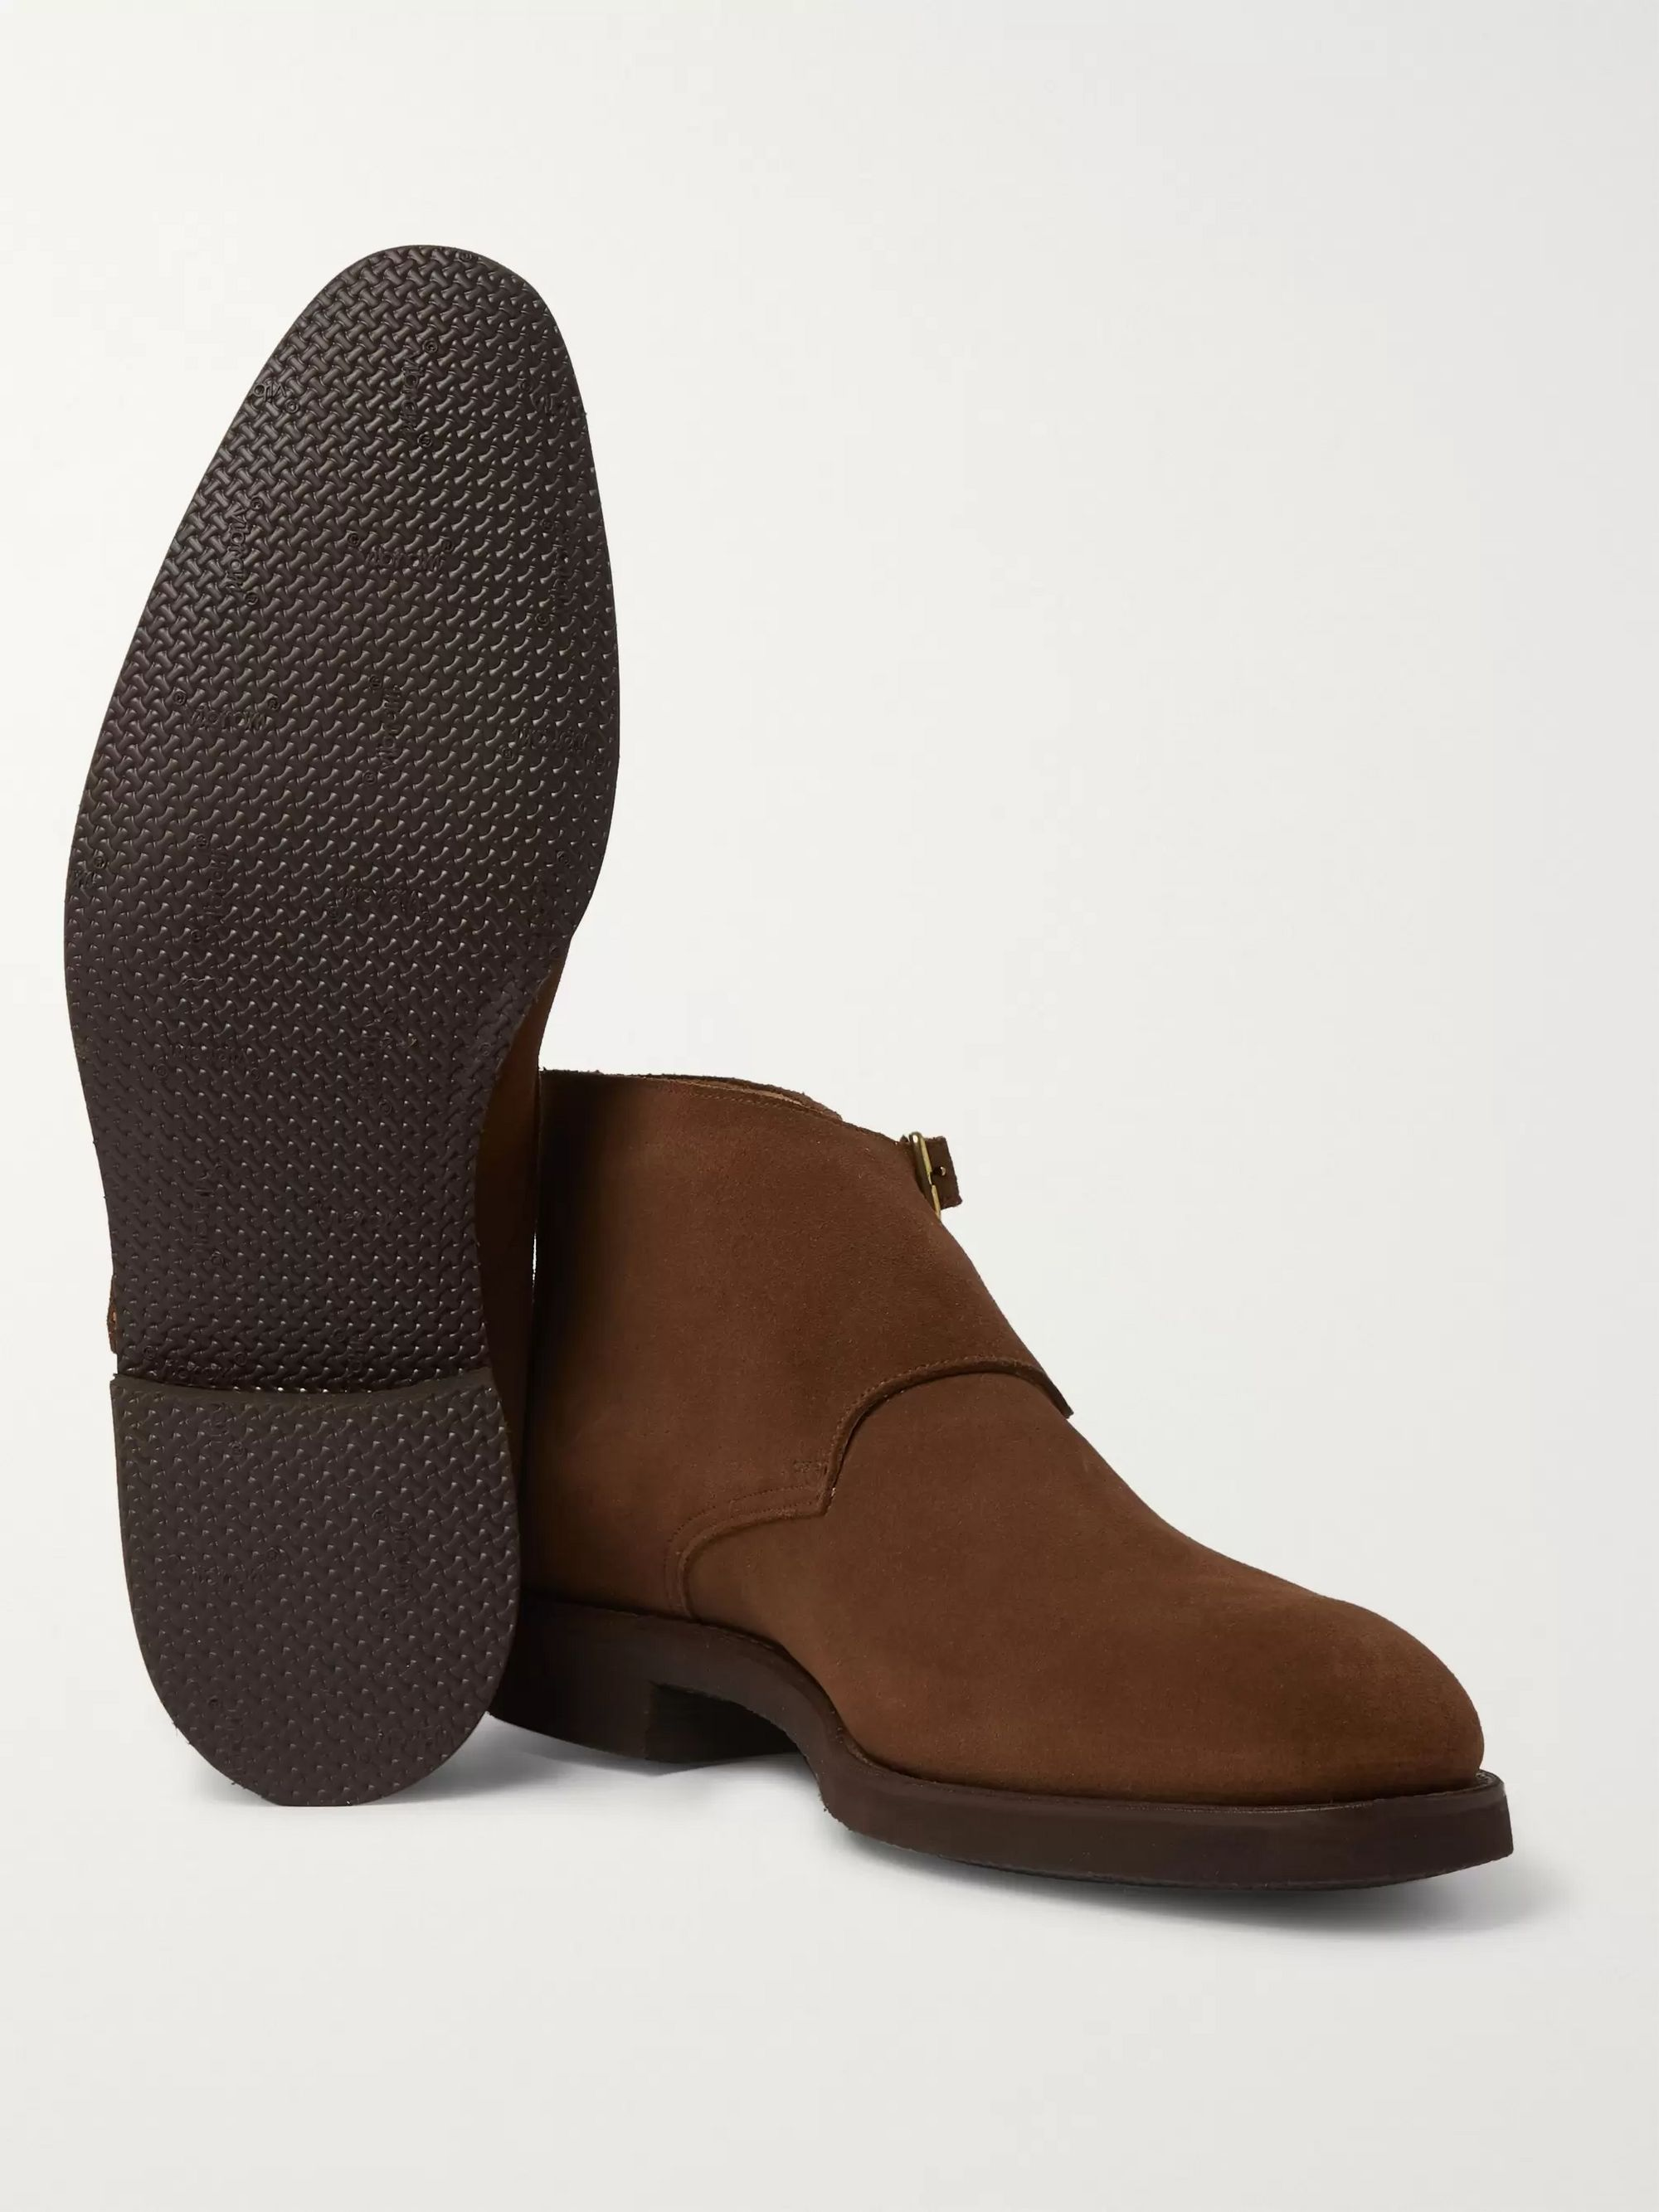 George Cleverley Fry Full-Grain Leather Monk-Strap Boots